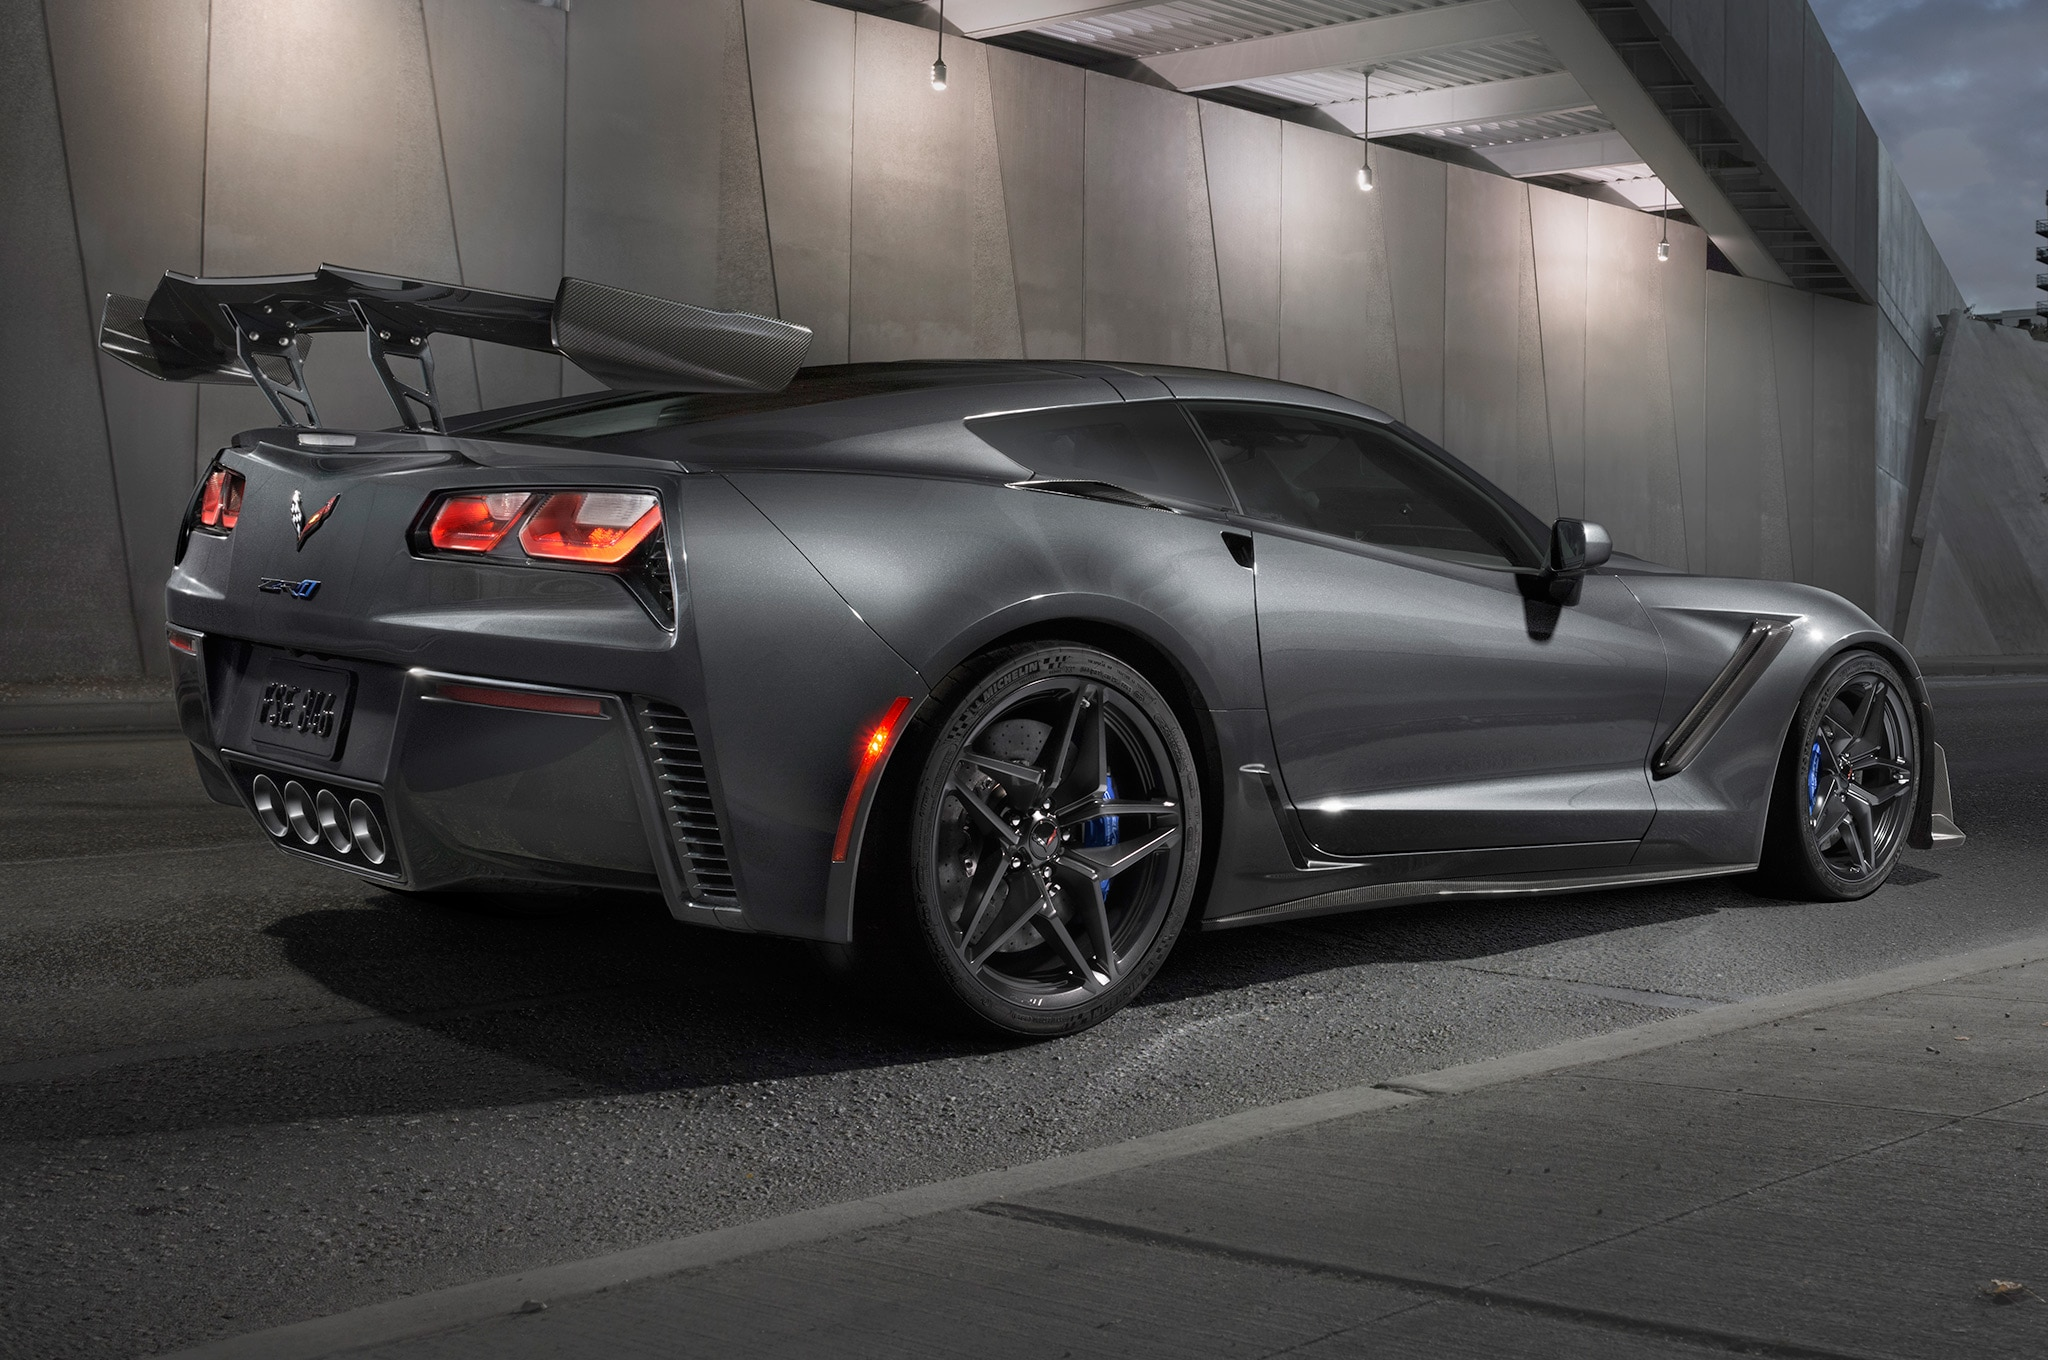 Corvette ZR1 Unveiled With 755 HP, 210+ MPH Top Speed